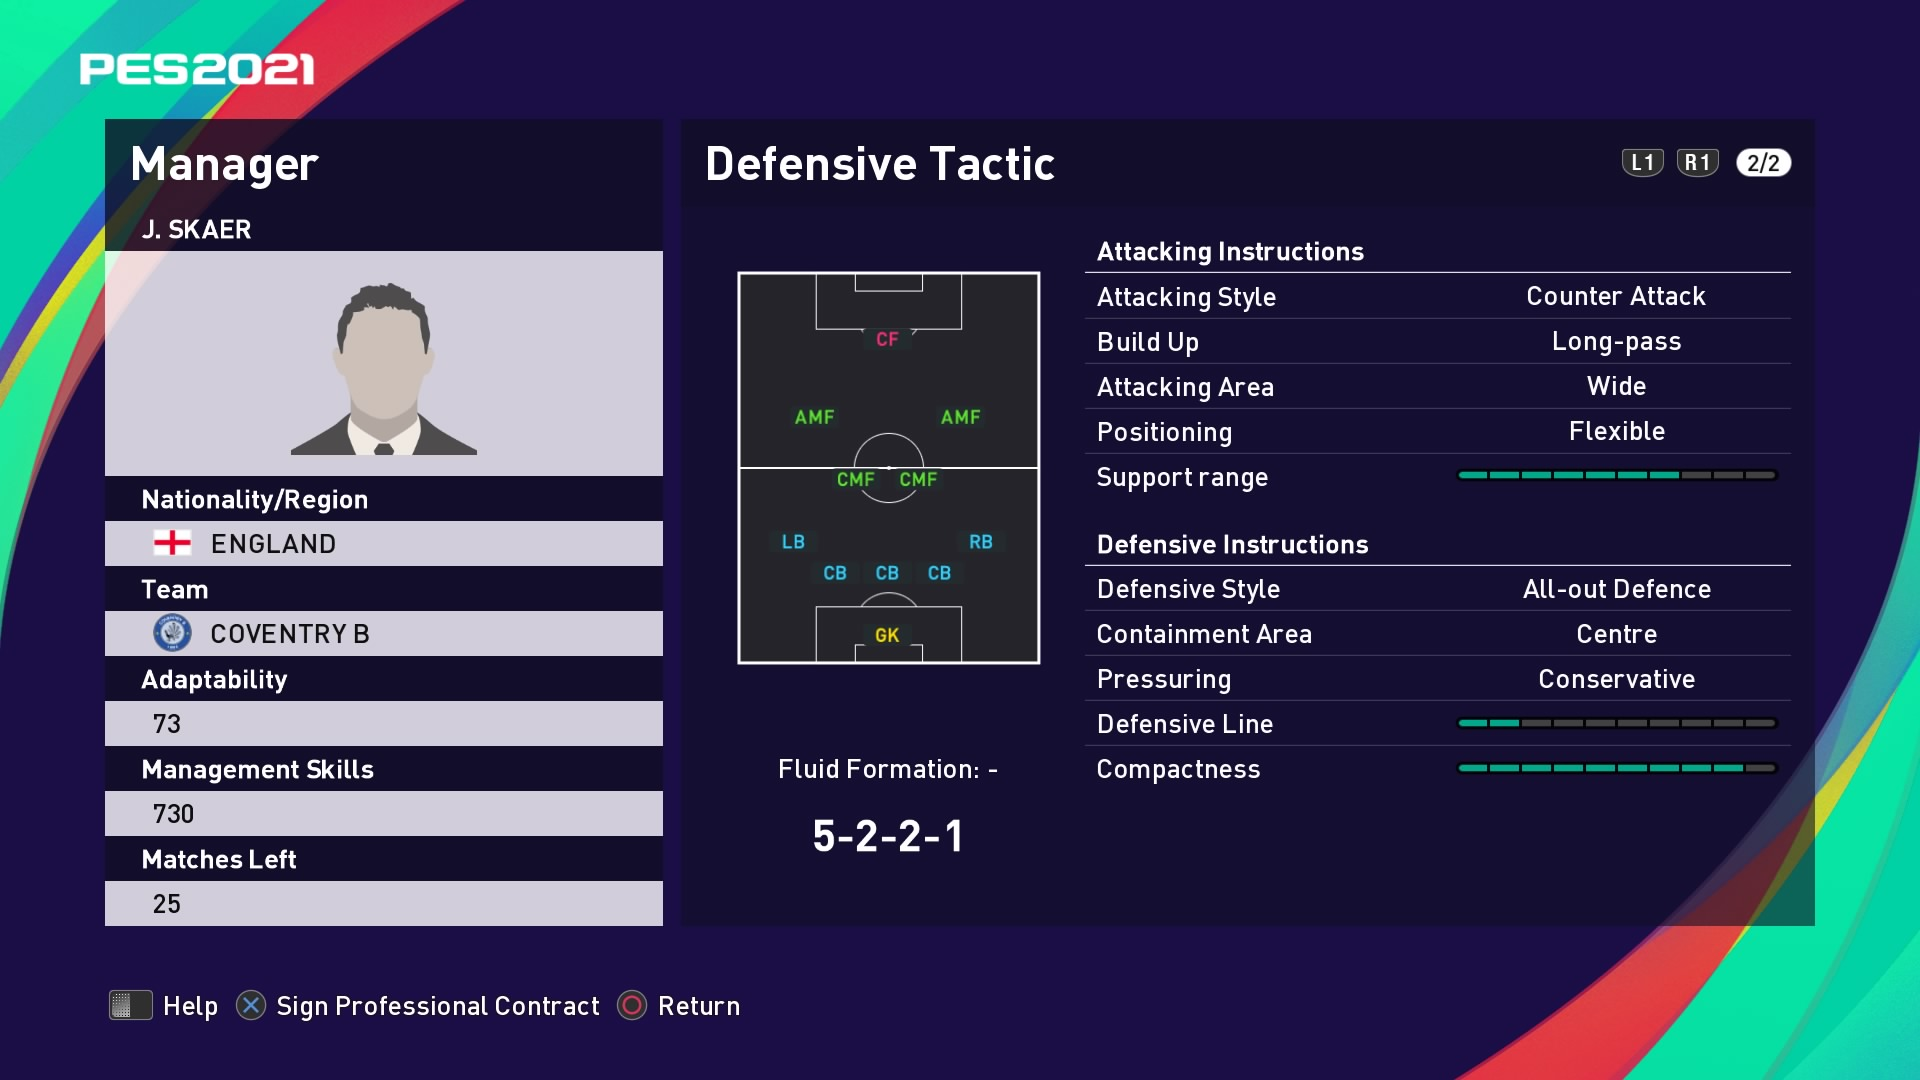 J. Skaer (Mark Robins) Defensive Tactic in PES 2021 myClub